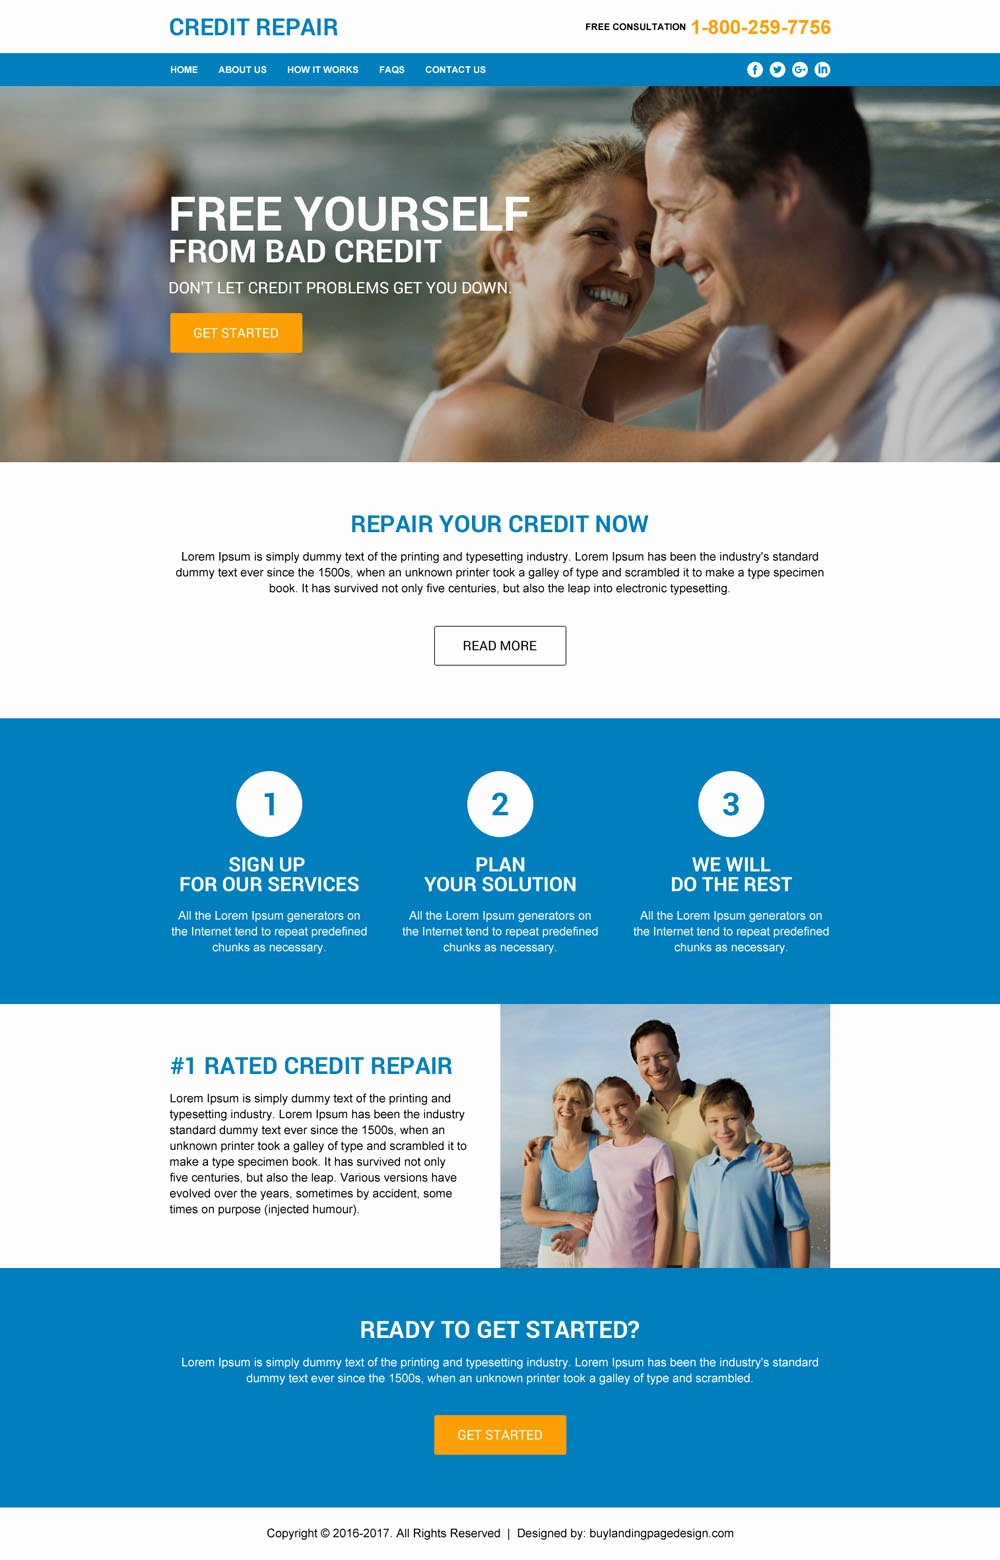 Credit Repair Flyer Template Luxury Credit Repair Website Templates Expofile